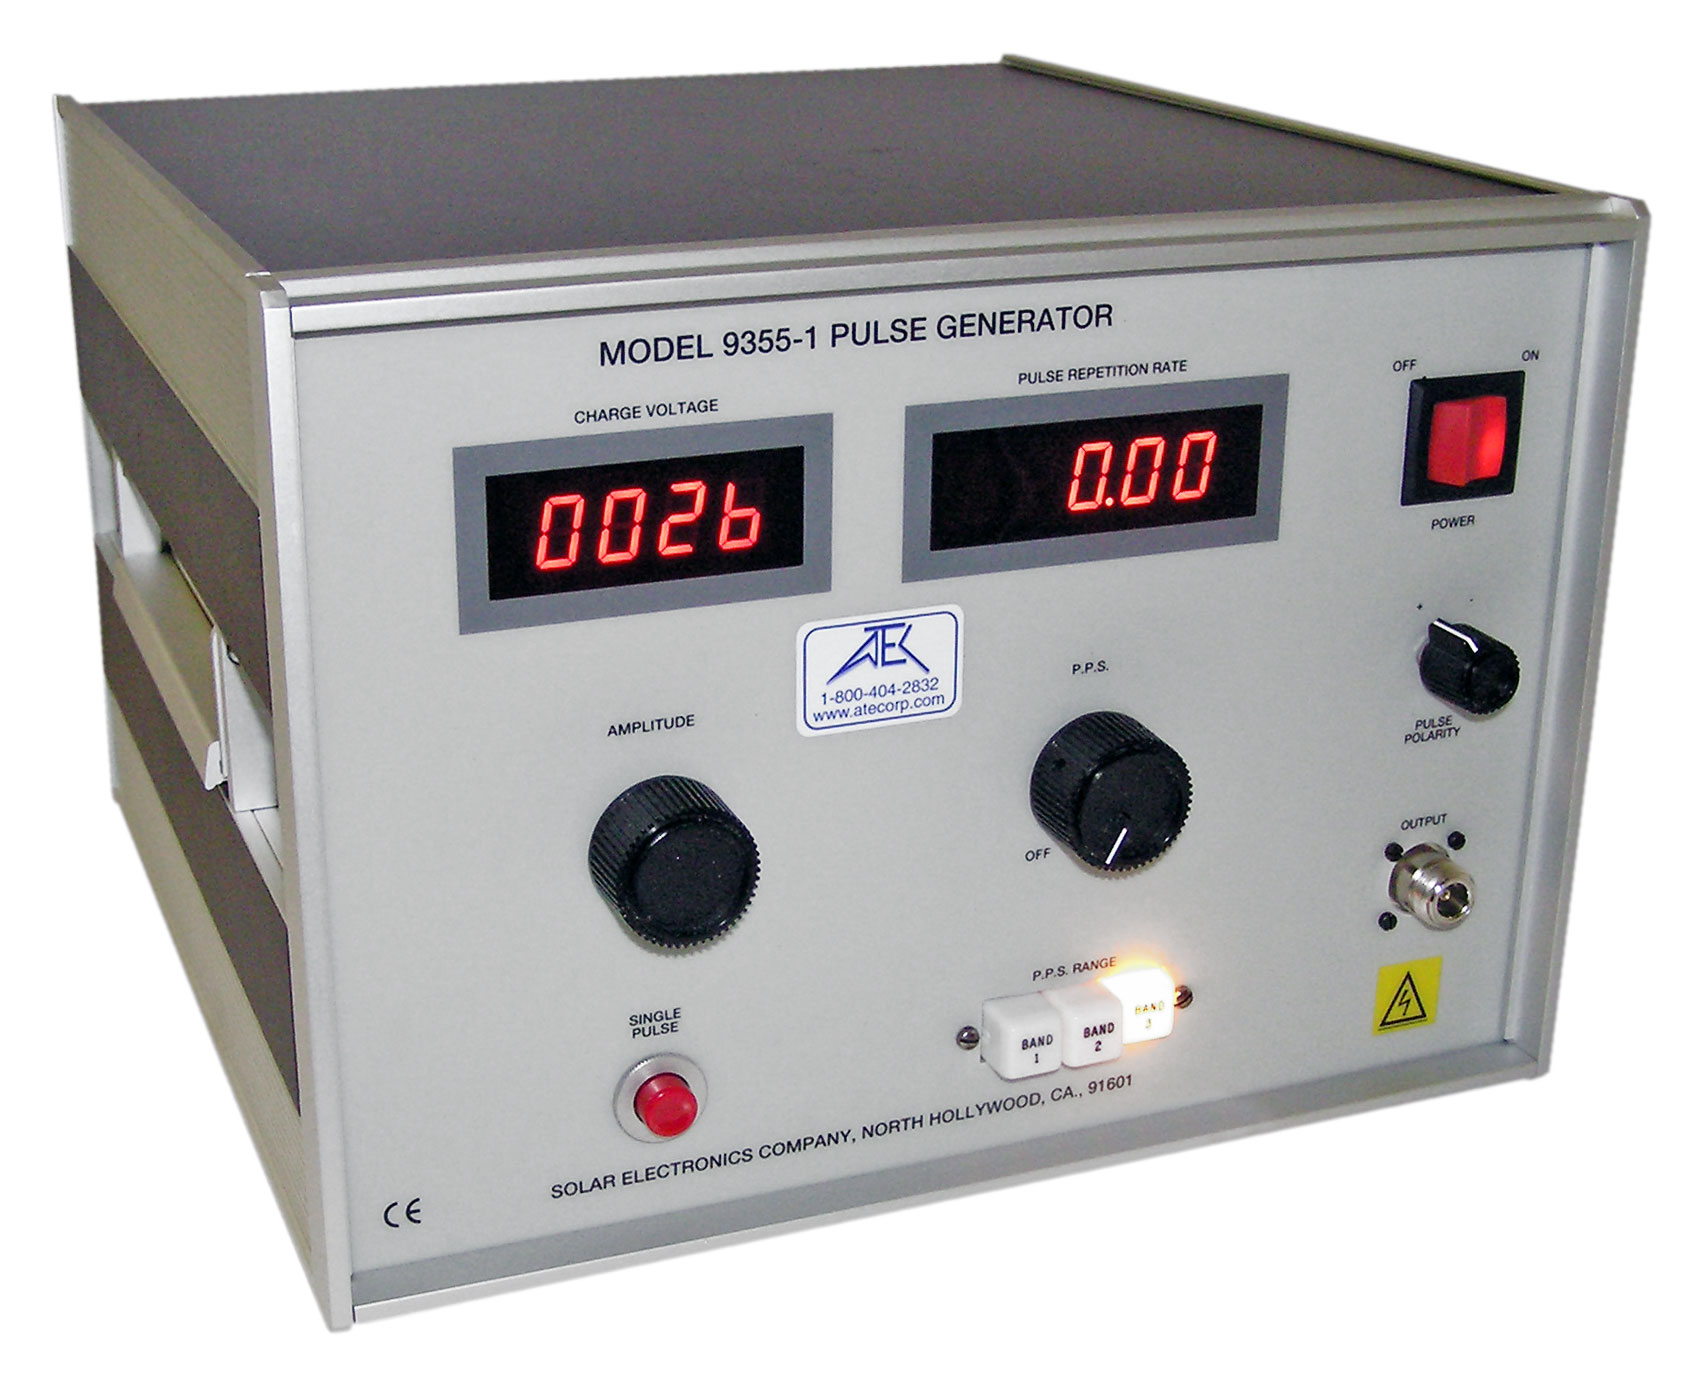 Rent Solar 9355-1 0 - 2 kV Pulse Generator for MIL-STD-461D/E CS115